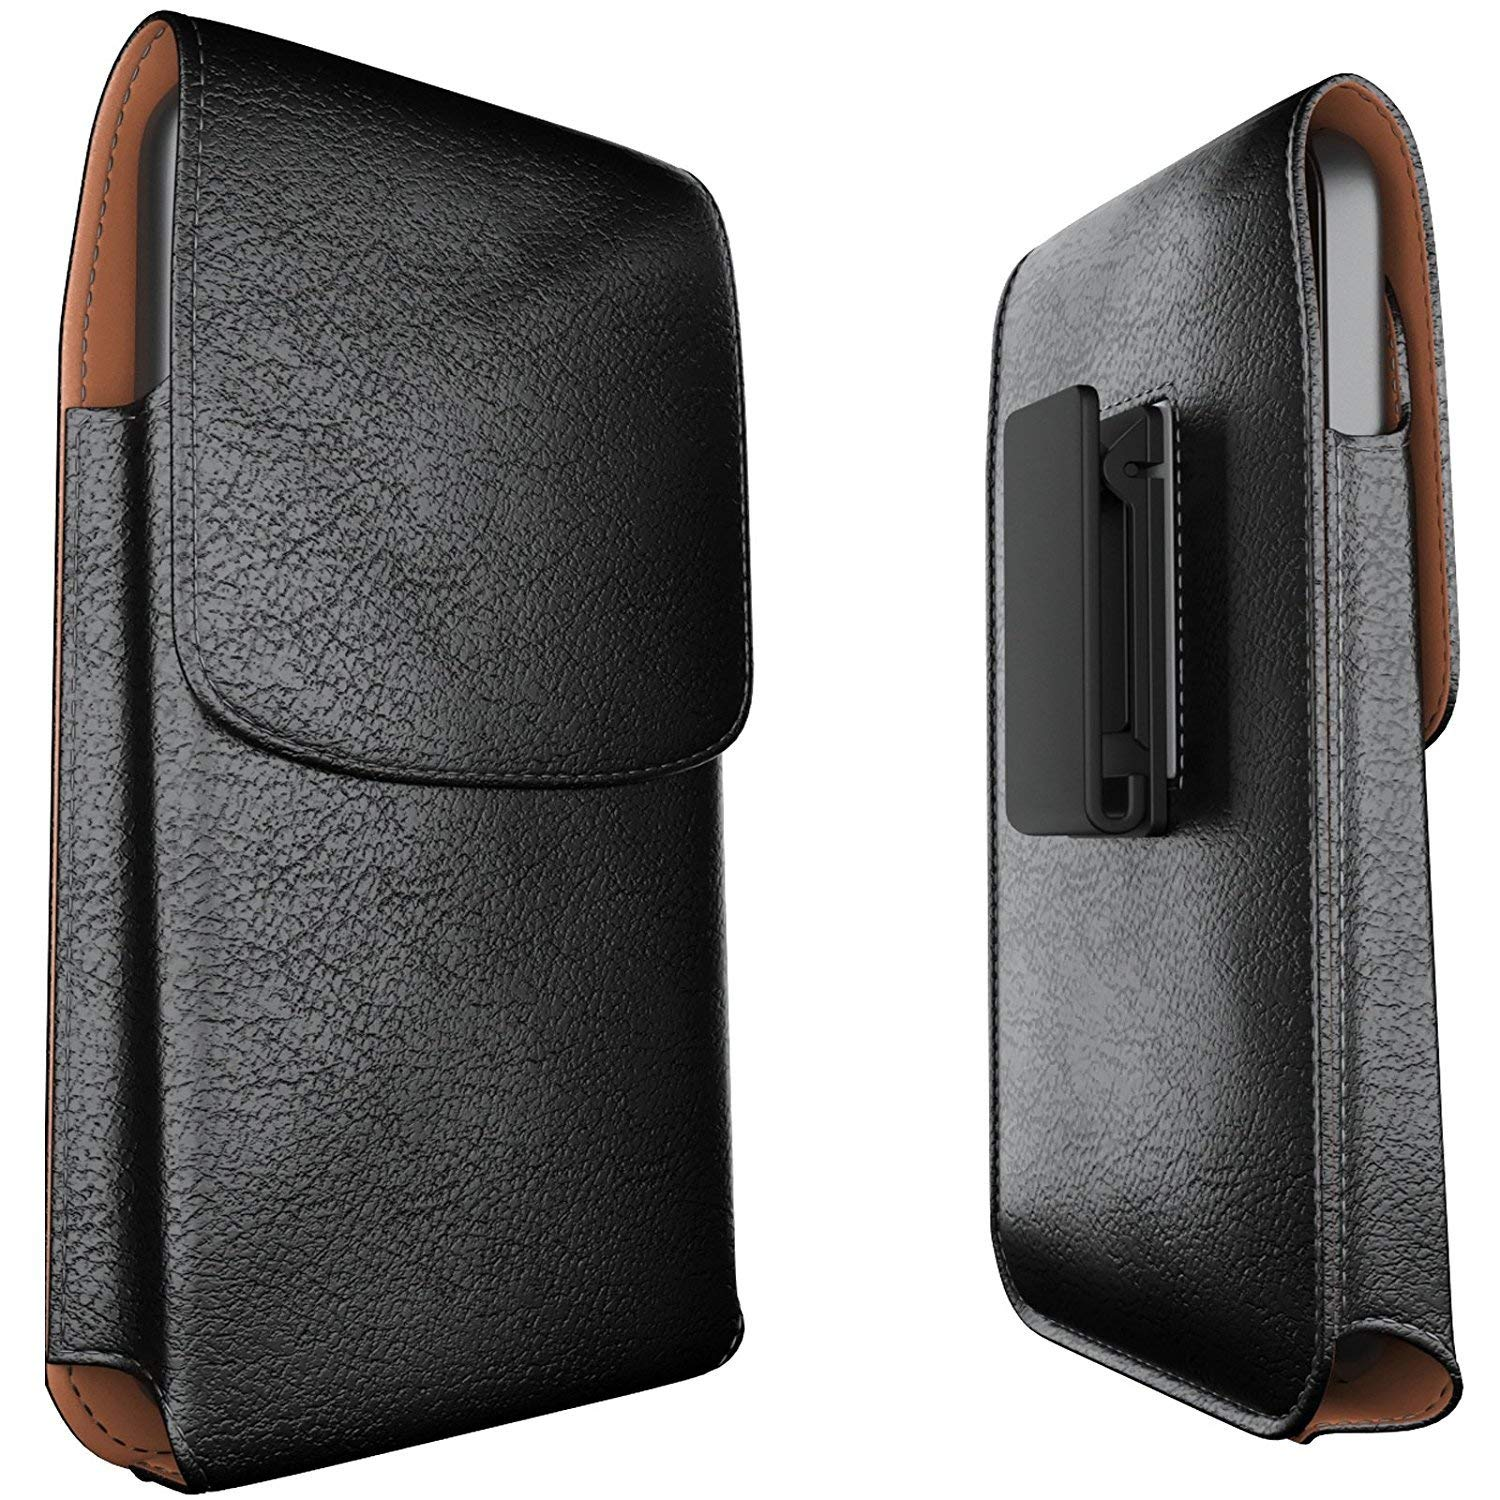 Meilib Galaxy Note 8 Belt Case Note 9 Belt Clip Case - Leather Pouch Belt Holster Case with Clip for Samsung Galaxy Note 9 / Note 8 (Fits Phone w/Slim Cover Case on) Black